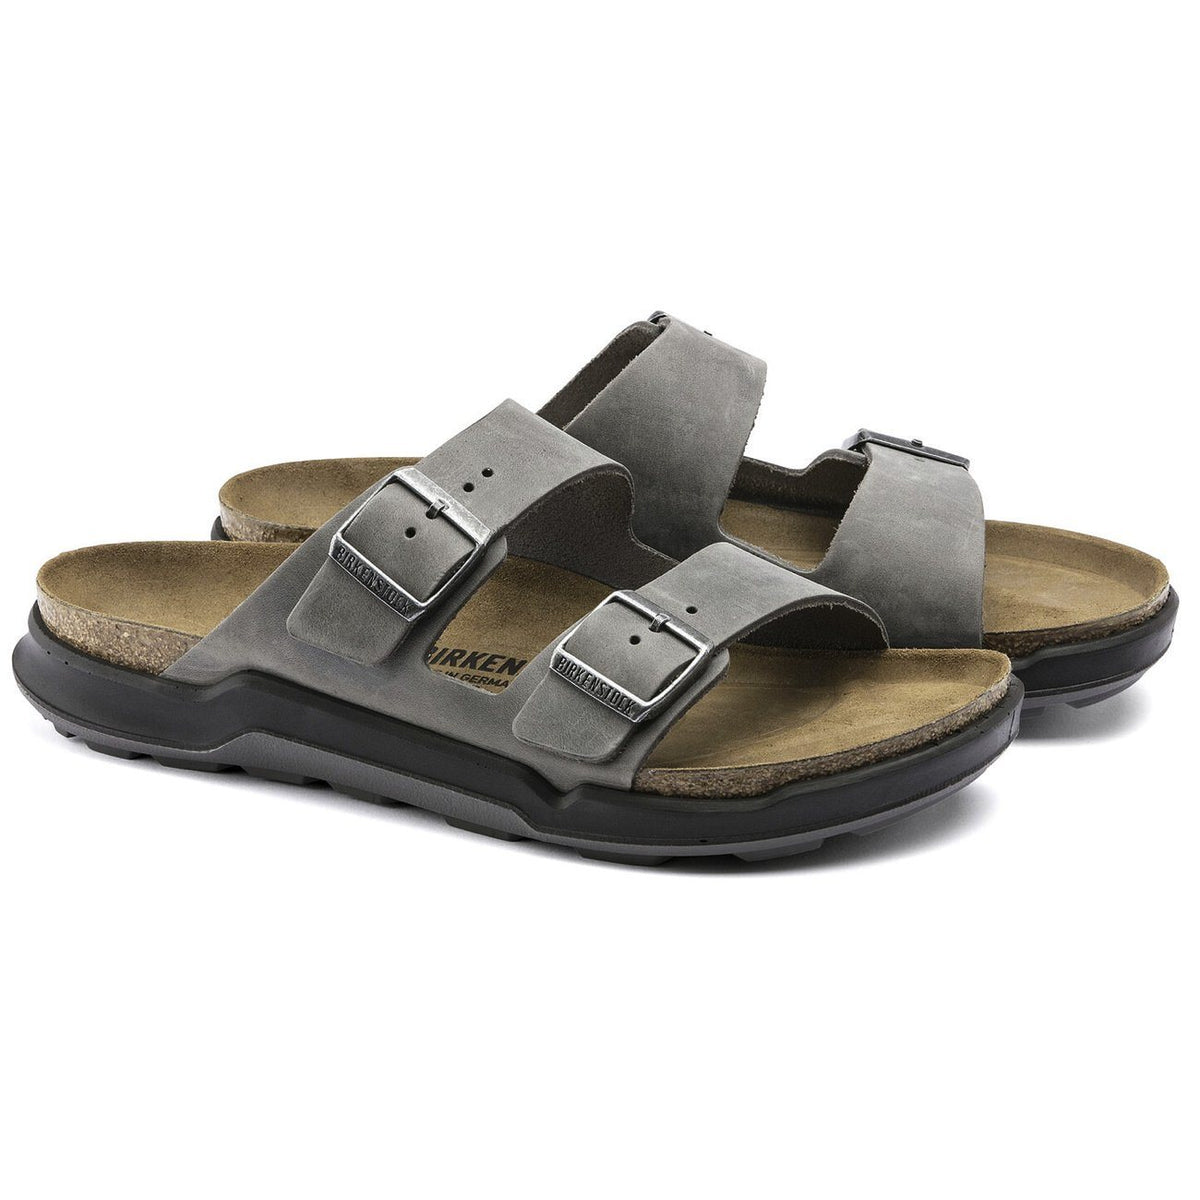 Birkenstock Adventure, Arizona, Nubuck Oiled Leather, Regular Fit, Iron Sandals Birkenstock Adventure